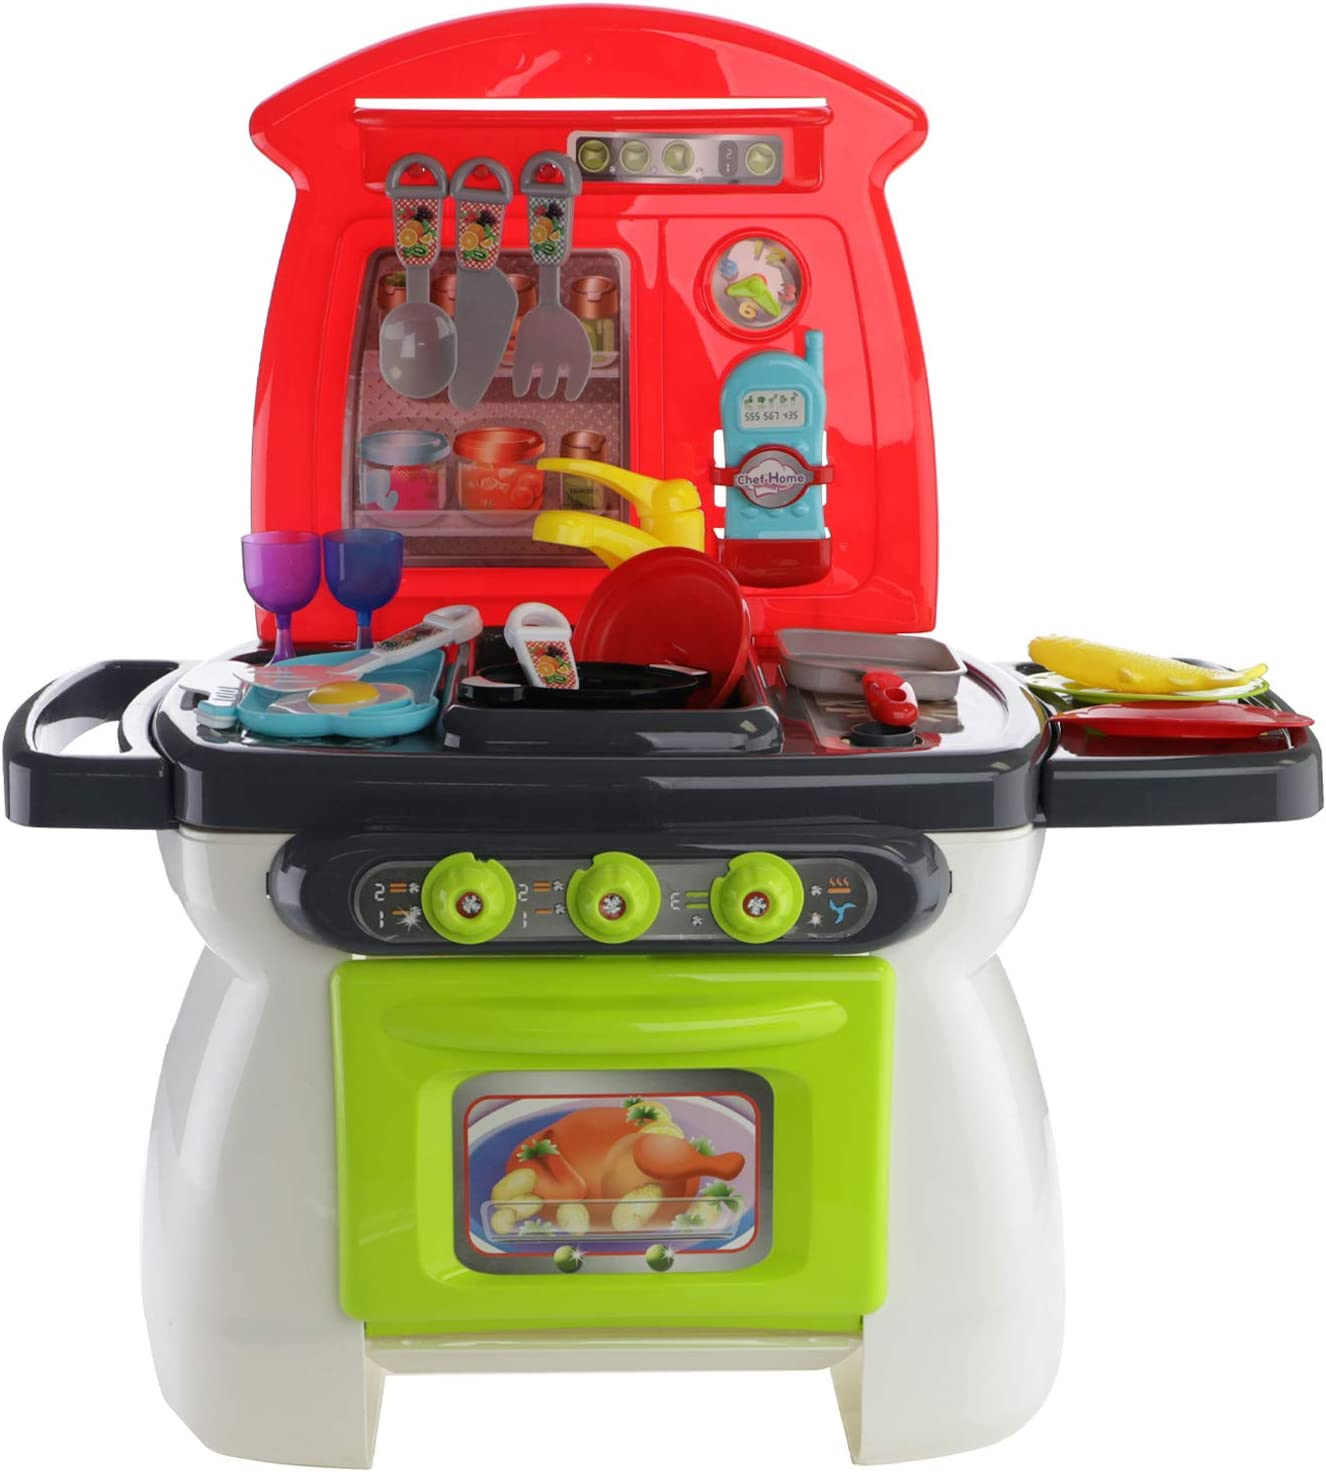 Pots Pans Play Brainy Kitchen Set for Girls /& Boys Utensils /& More This Toddler Playset is a Great Educational Toy Mini Toy Kitchen Comes with 26 Play Accessories Like Toy Food